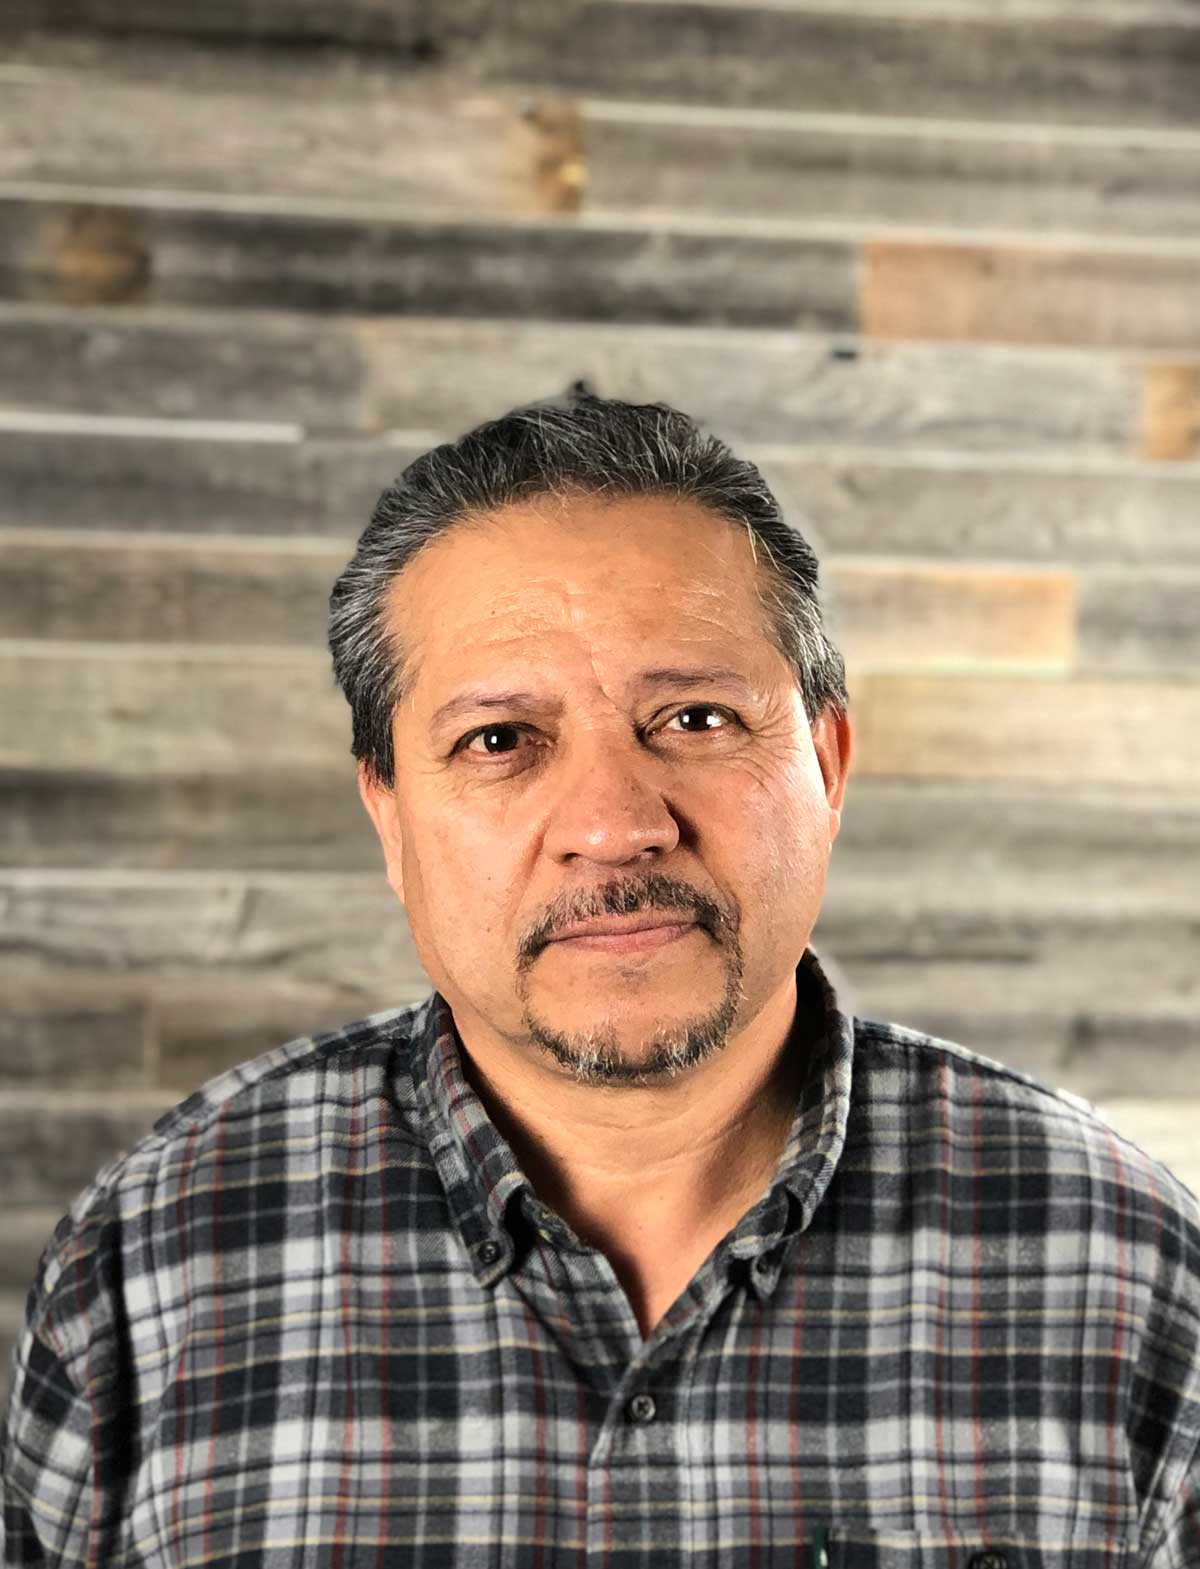 Pastor Neftali Macias - Spanish Ministry PastorPastor Neftali preaches at 12:30pm on Sundays in Spanish at Eastmont. He and his wife Ruth (Bi-lingual Real Estate Agent and Translator) live here in the valley and would love to see you in service!